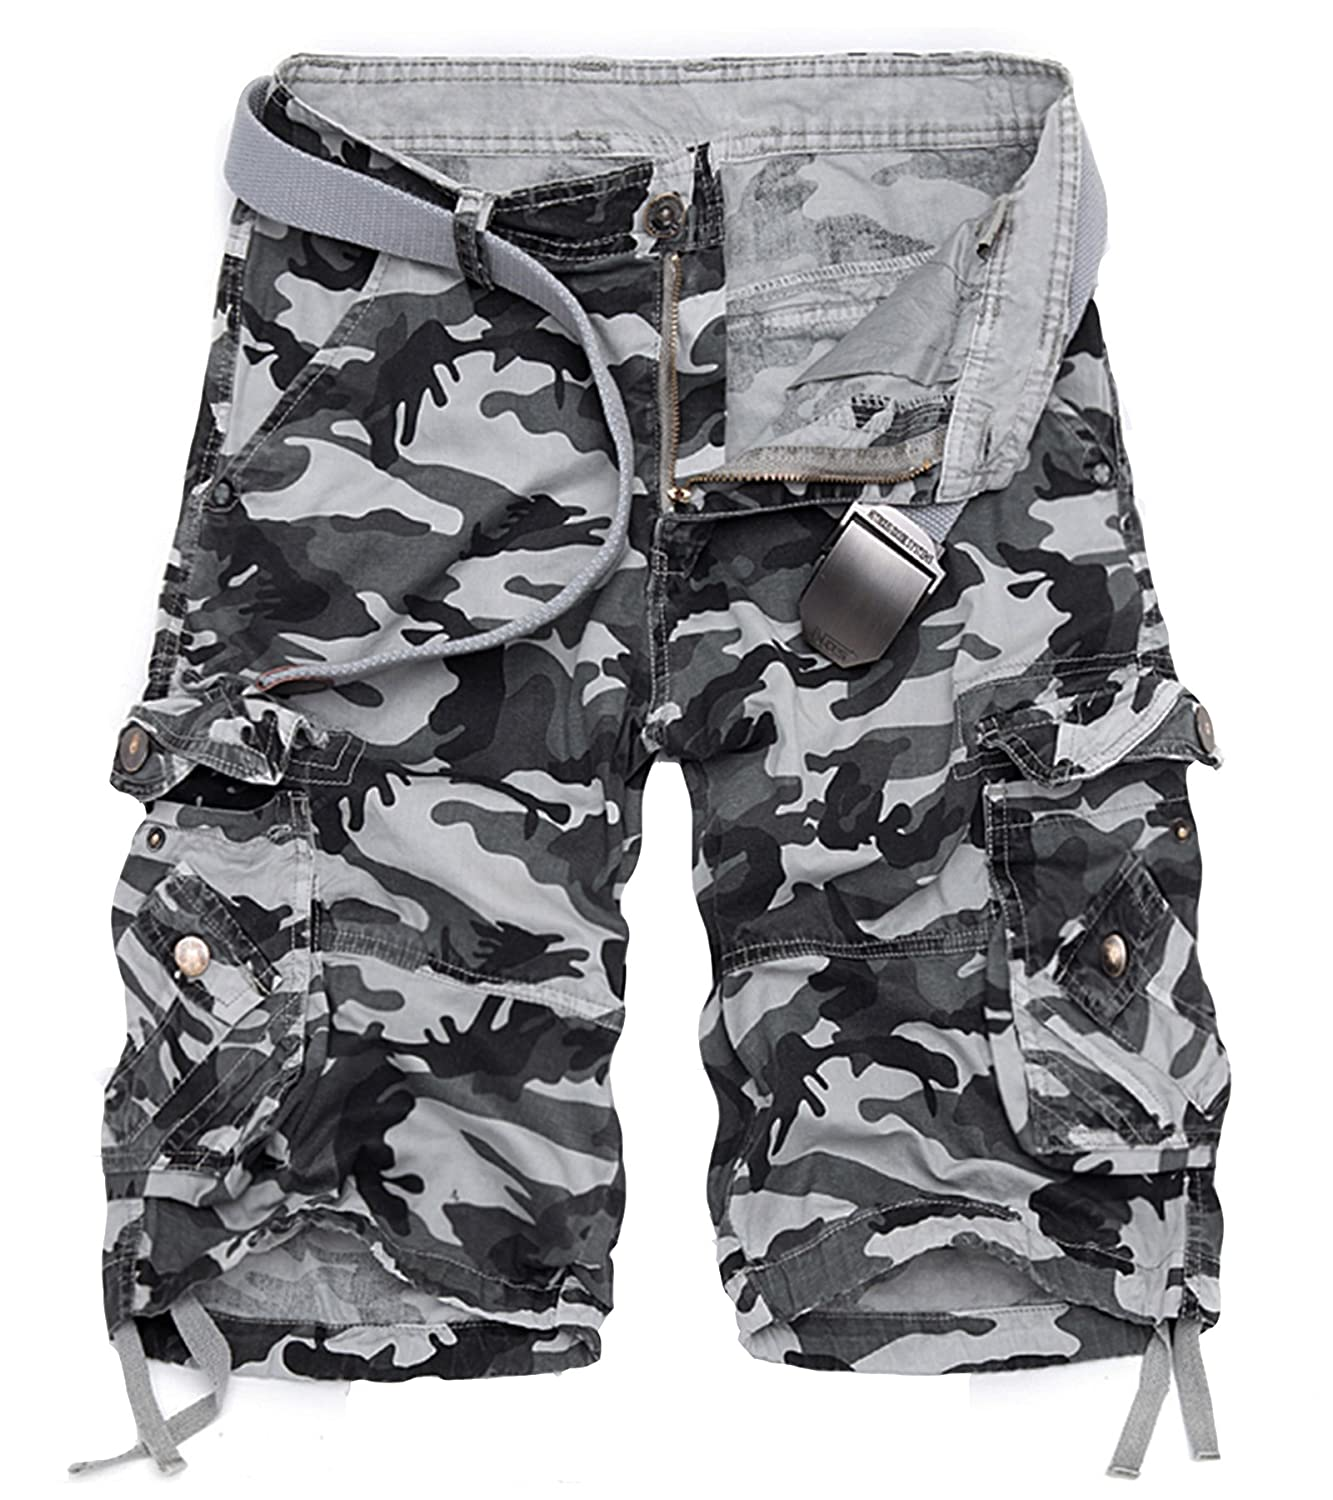 DONSON Mens Camo Cargo Shorts Multi-Pocket Camouflage Relaxed Fit Shorts